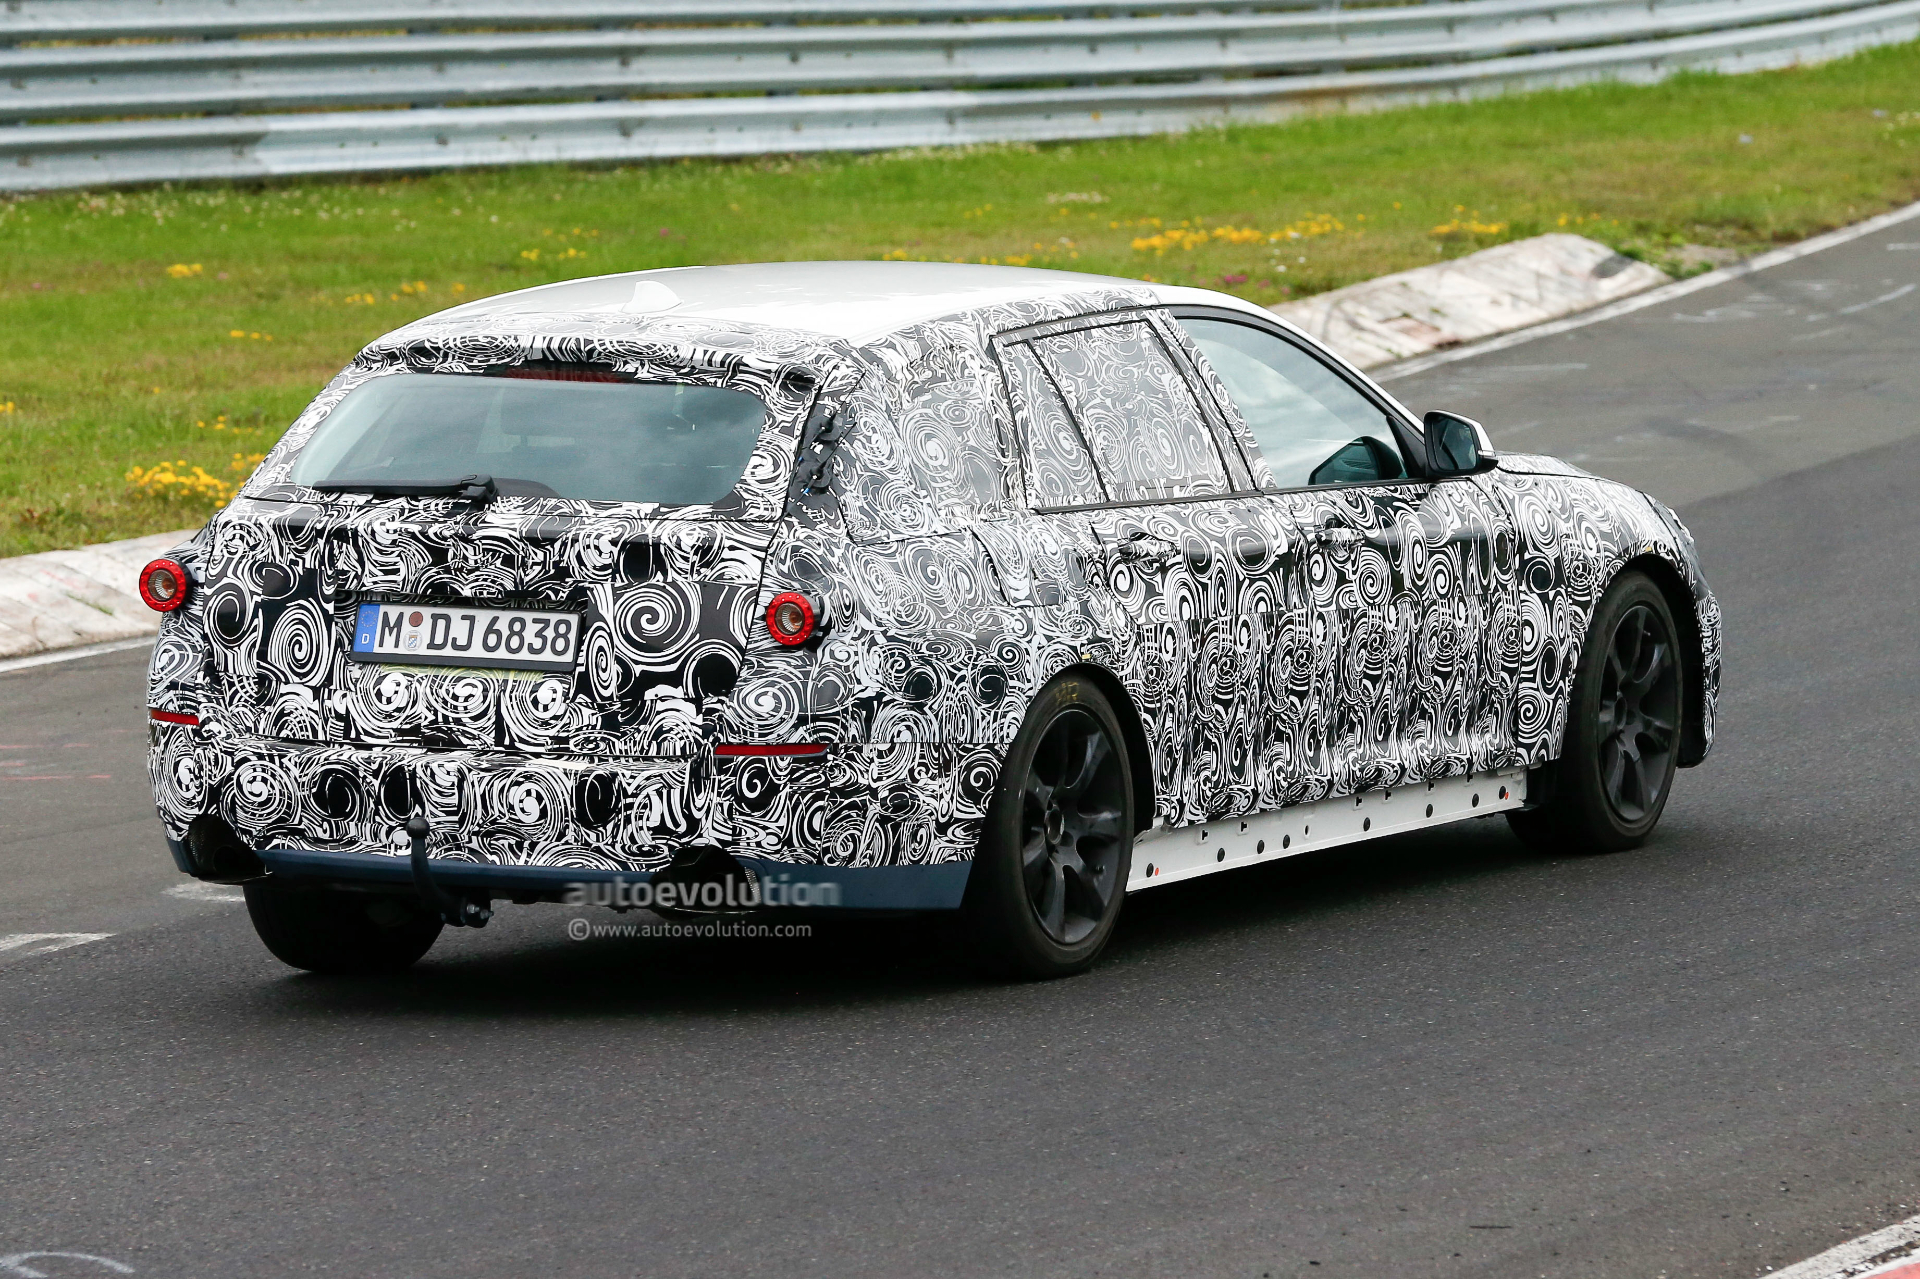 2016 - [BMW] Série 5 Berline & Touring [G30/G31] - Page 4 2016-bmw-5-series-touring-prototype-spied-inside-and-out-photo-gallery_8